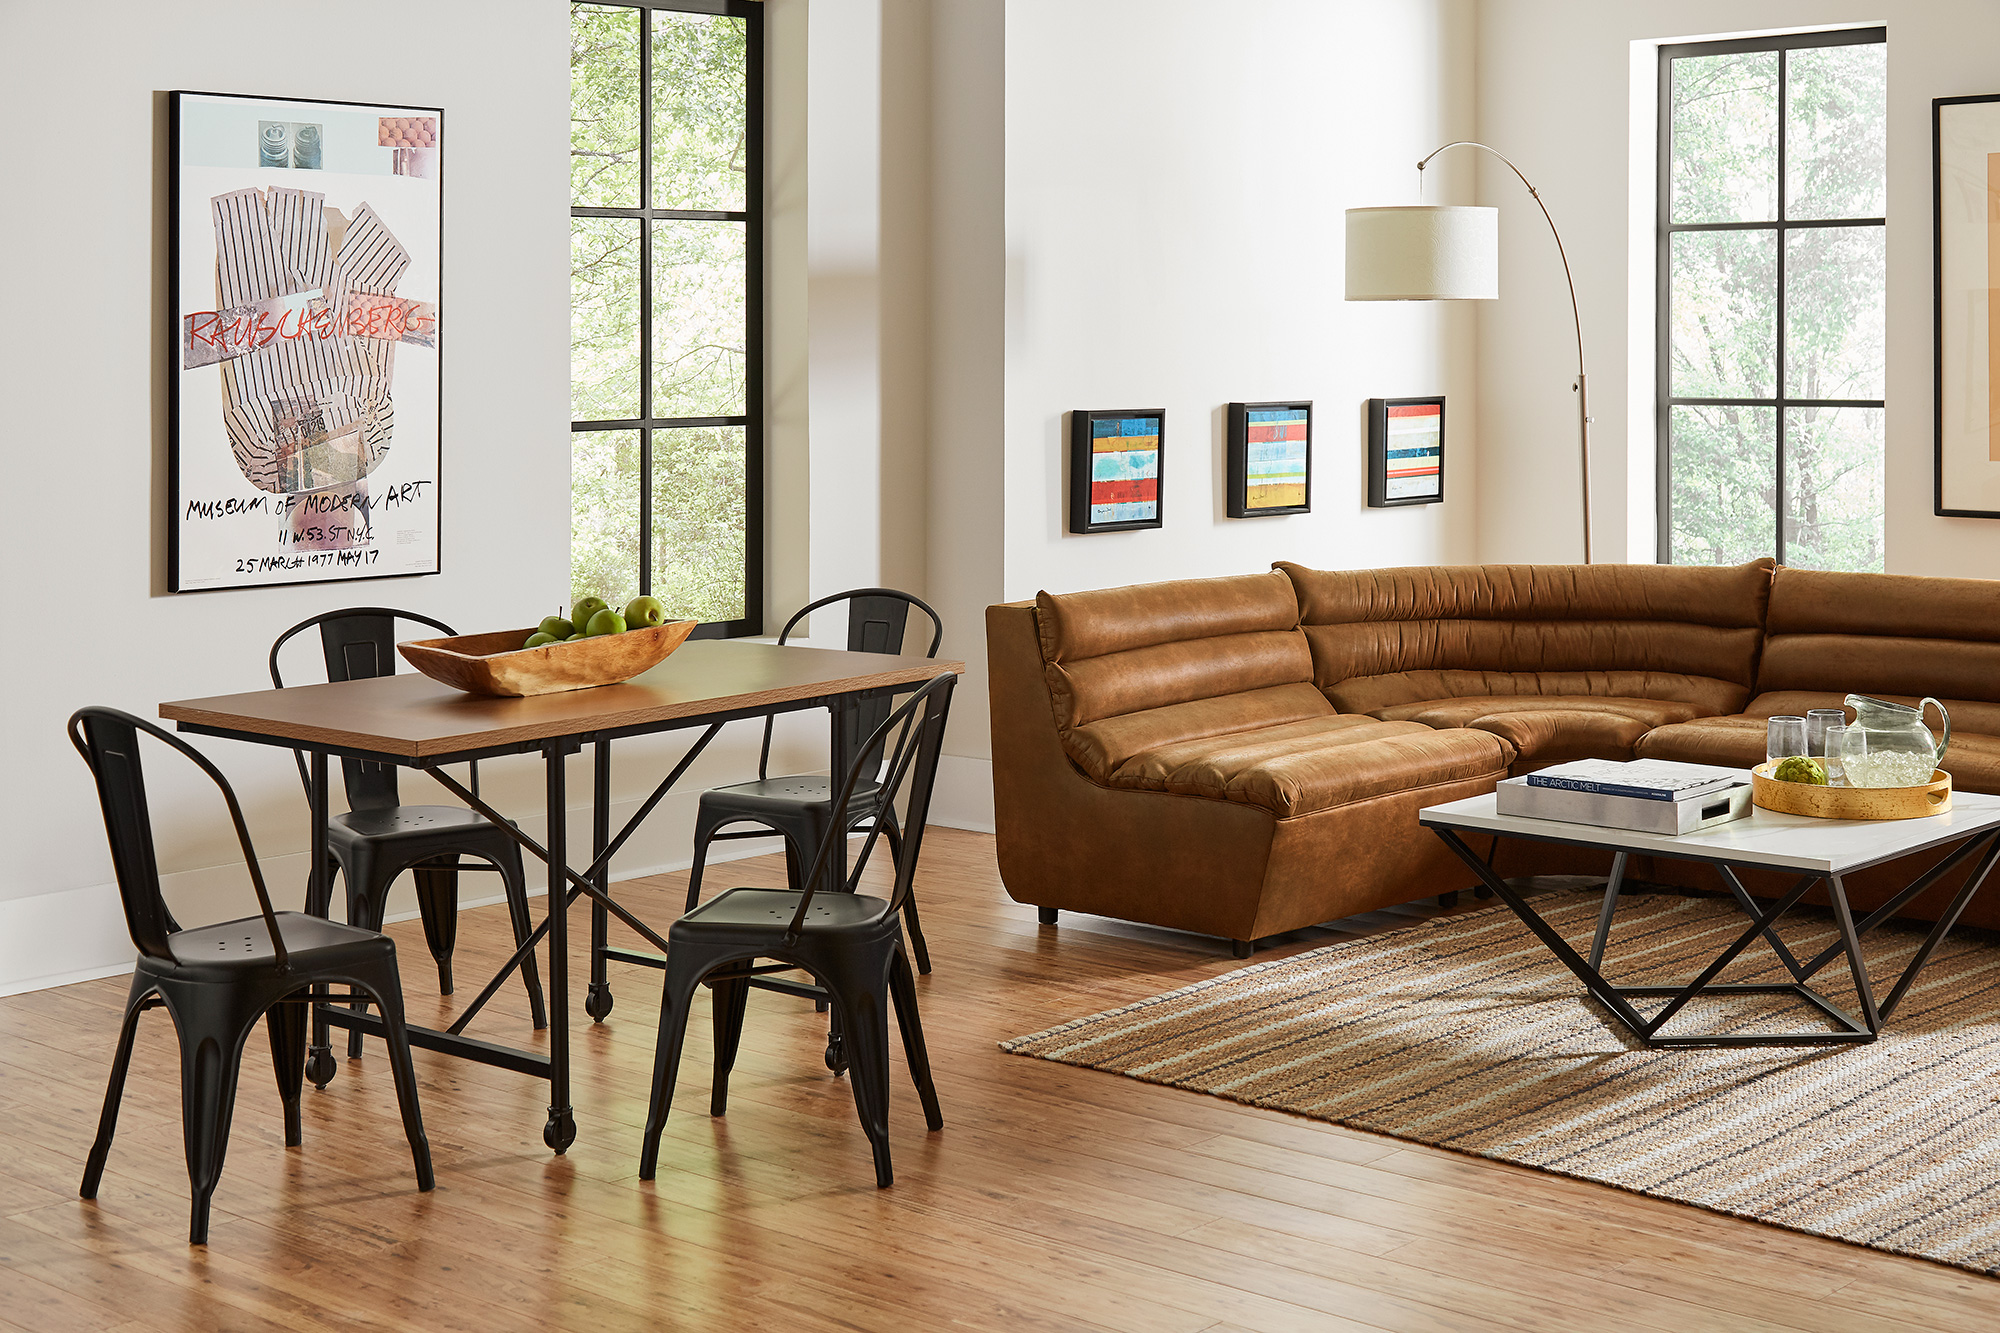 F3 living area furniture for student housing